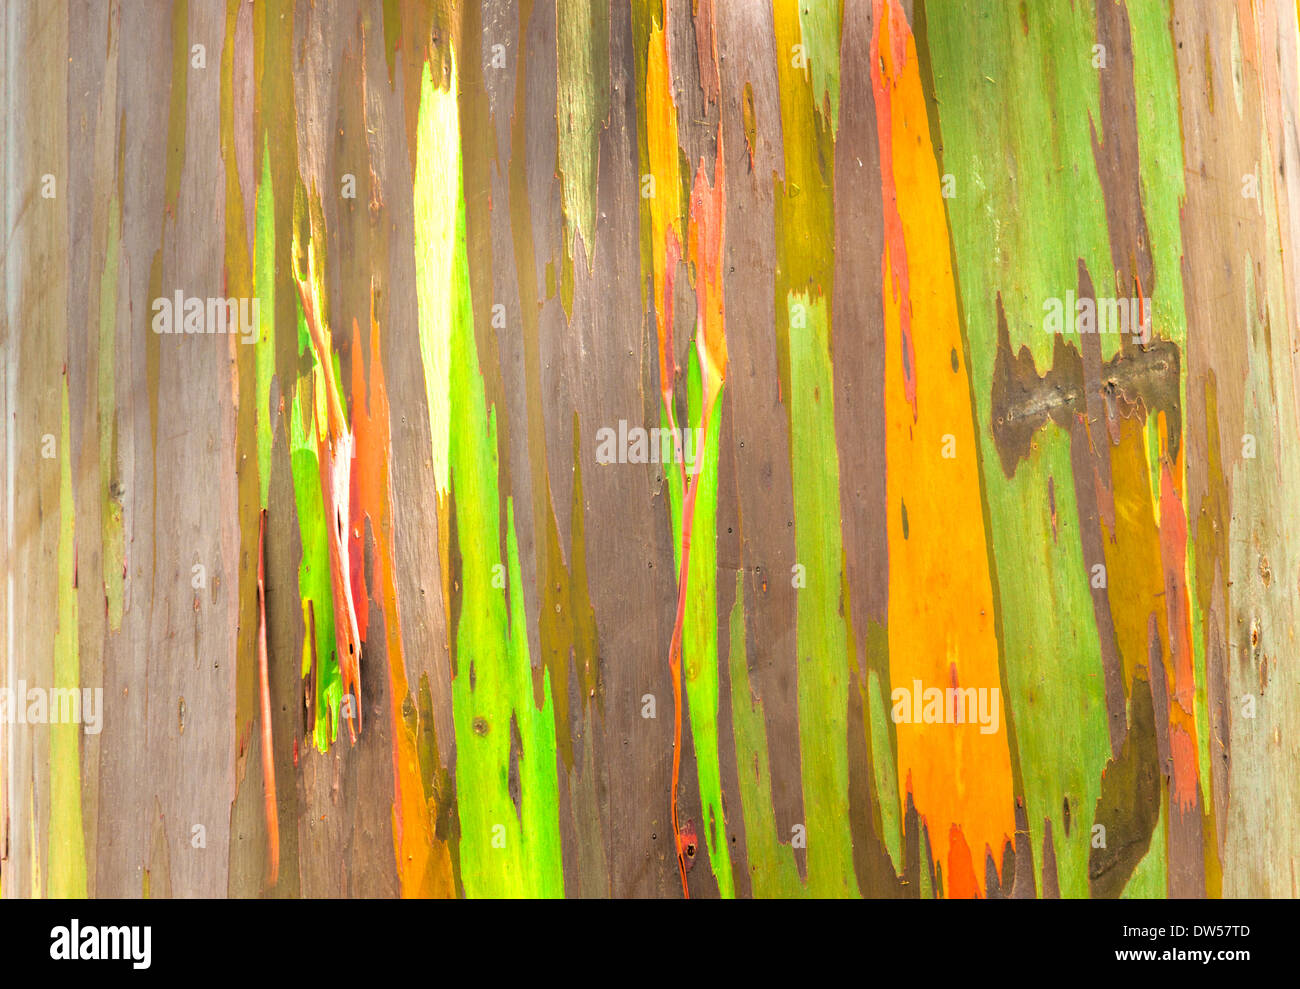 The colorful trunk of the Rainbow Eucalyptus tree - Stock Image